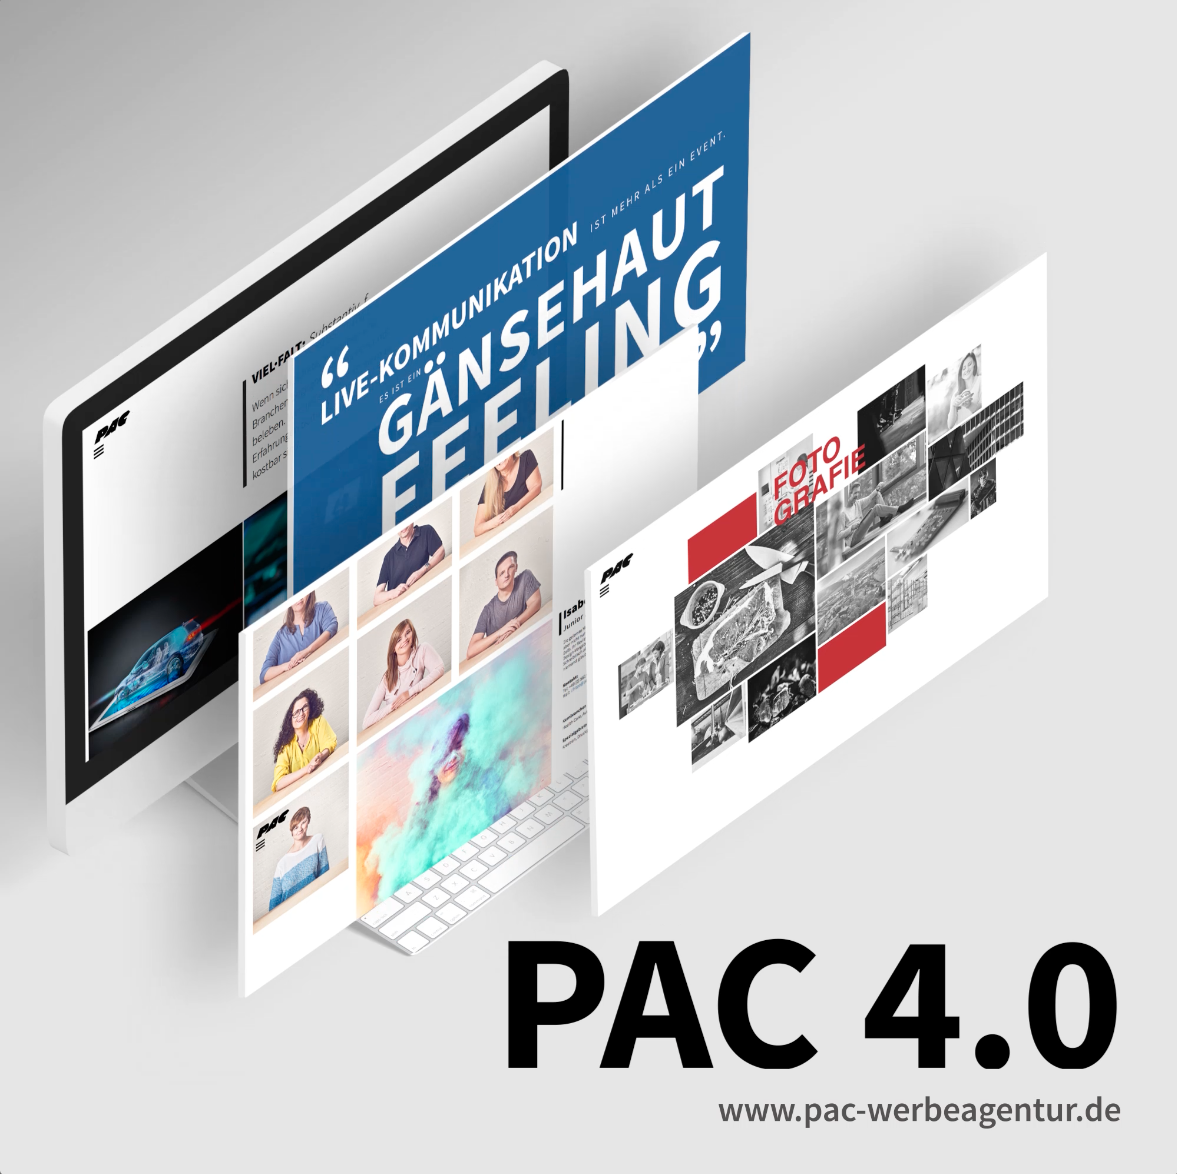 PAC Werbeagentur – Vellmar/Kassel – Marketing, Kommunikation & Kreation – Full Service seit 1974